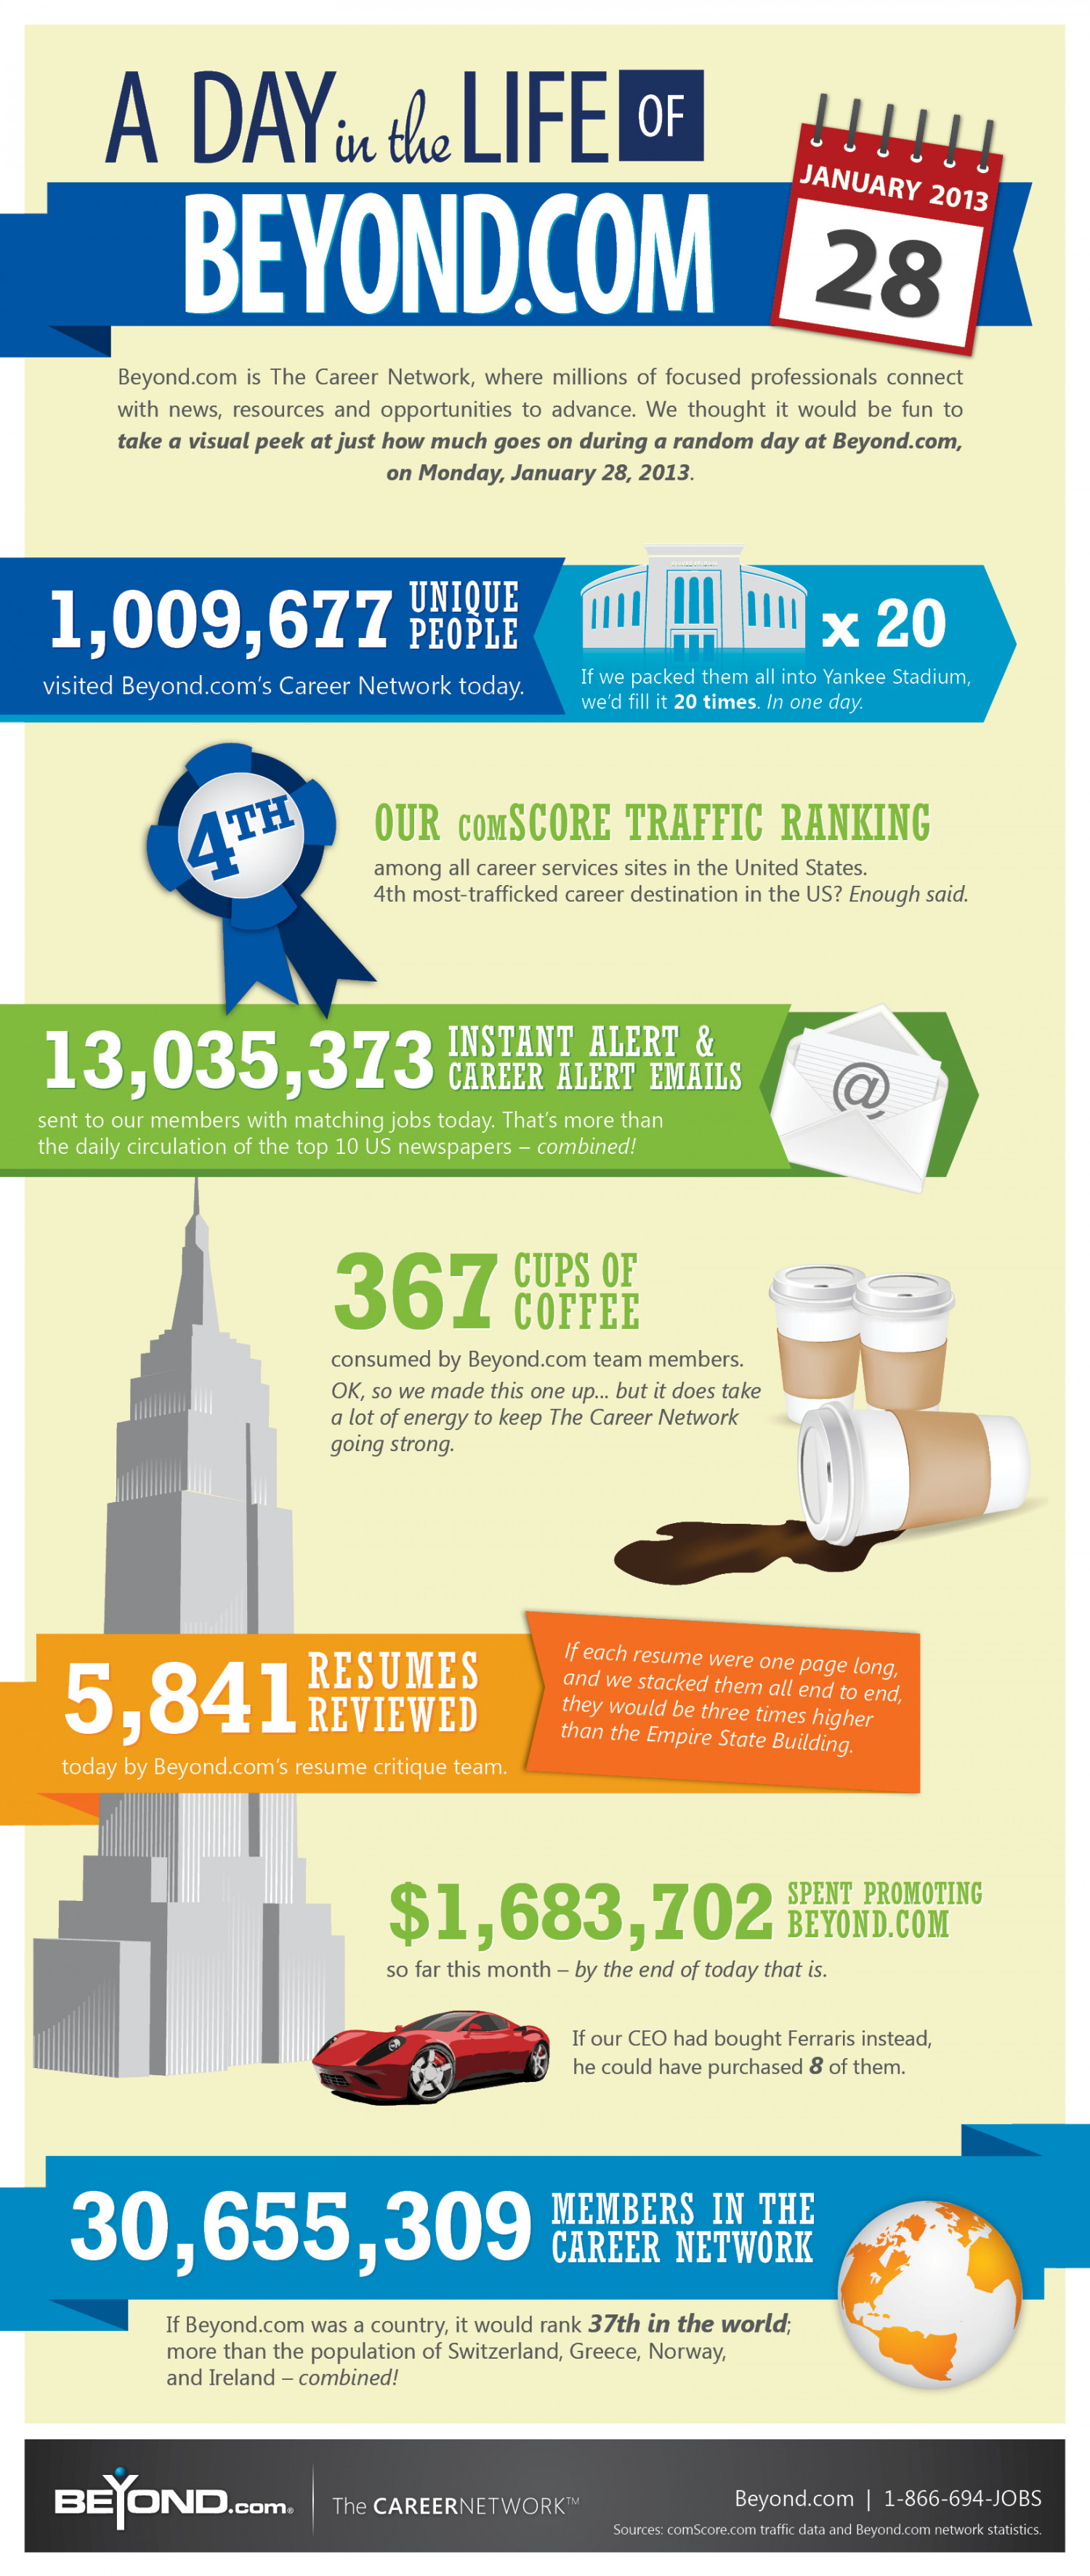 A Day in the Life of Beyond.com Infographic